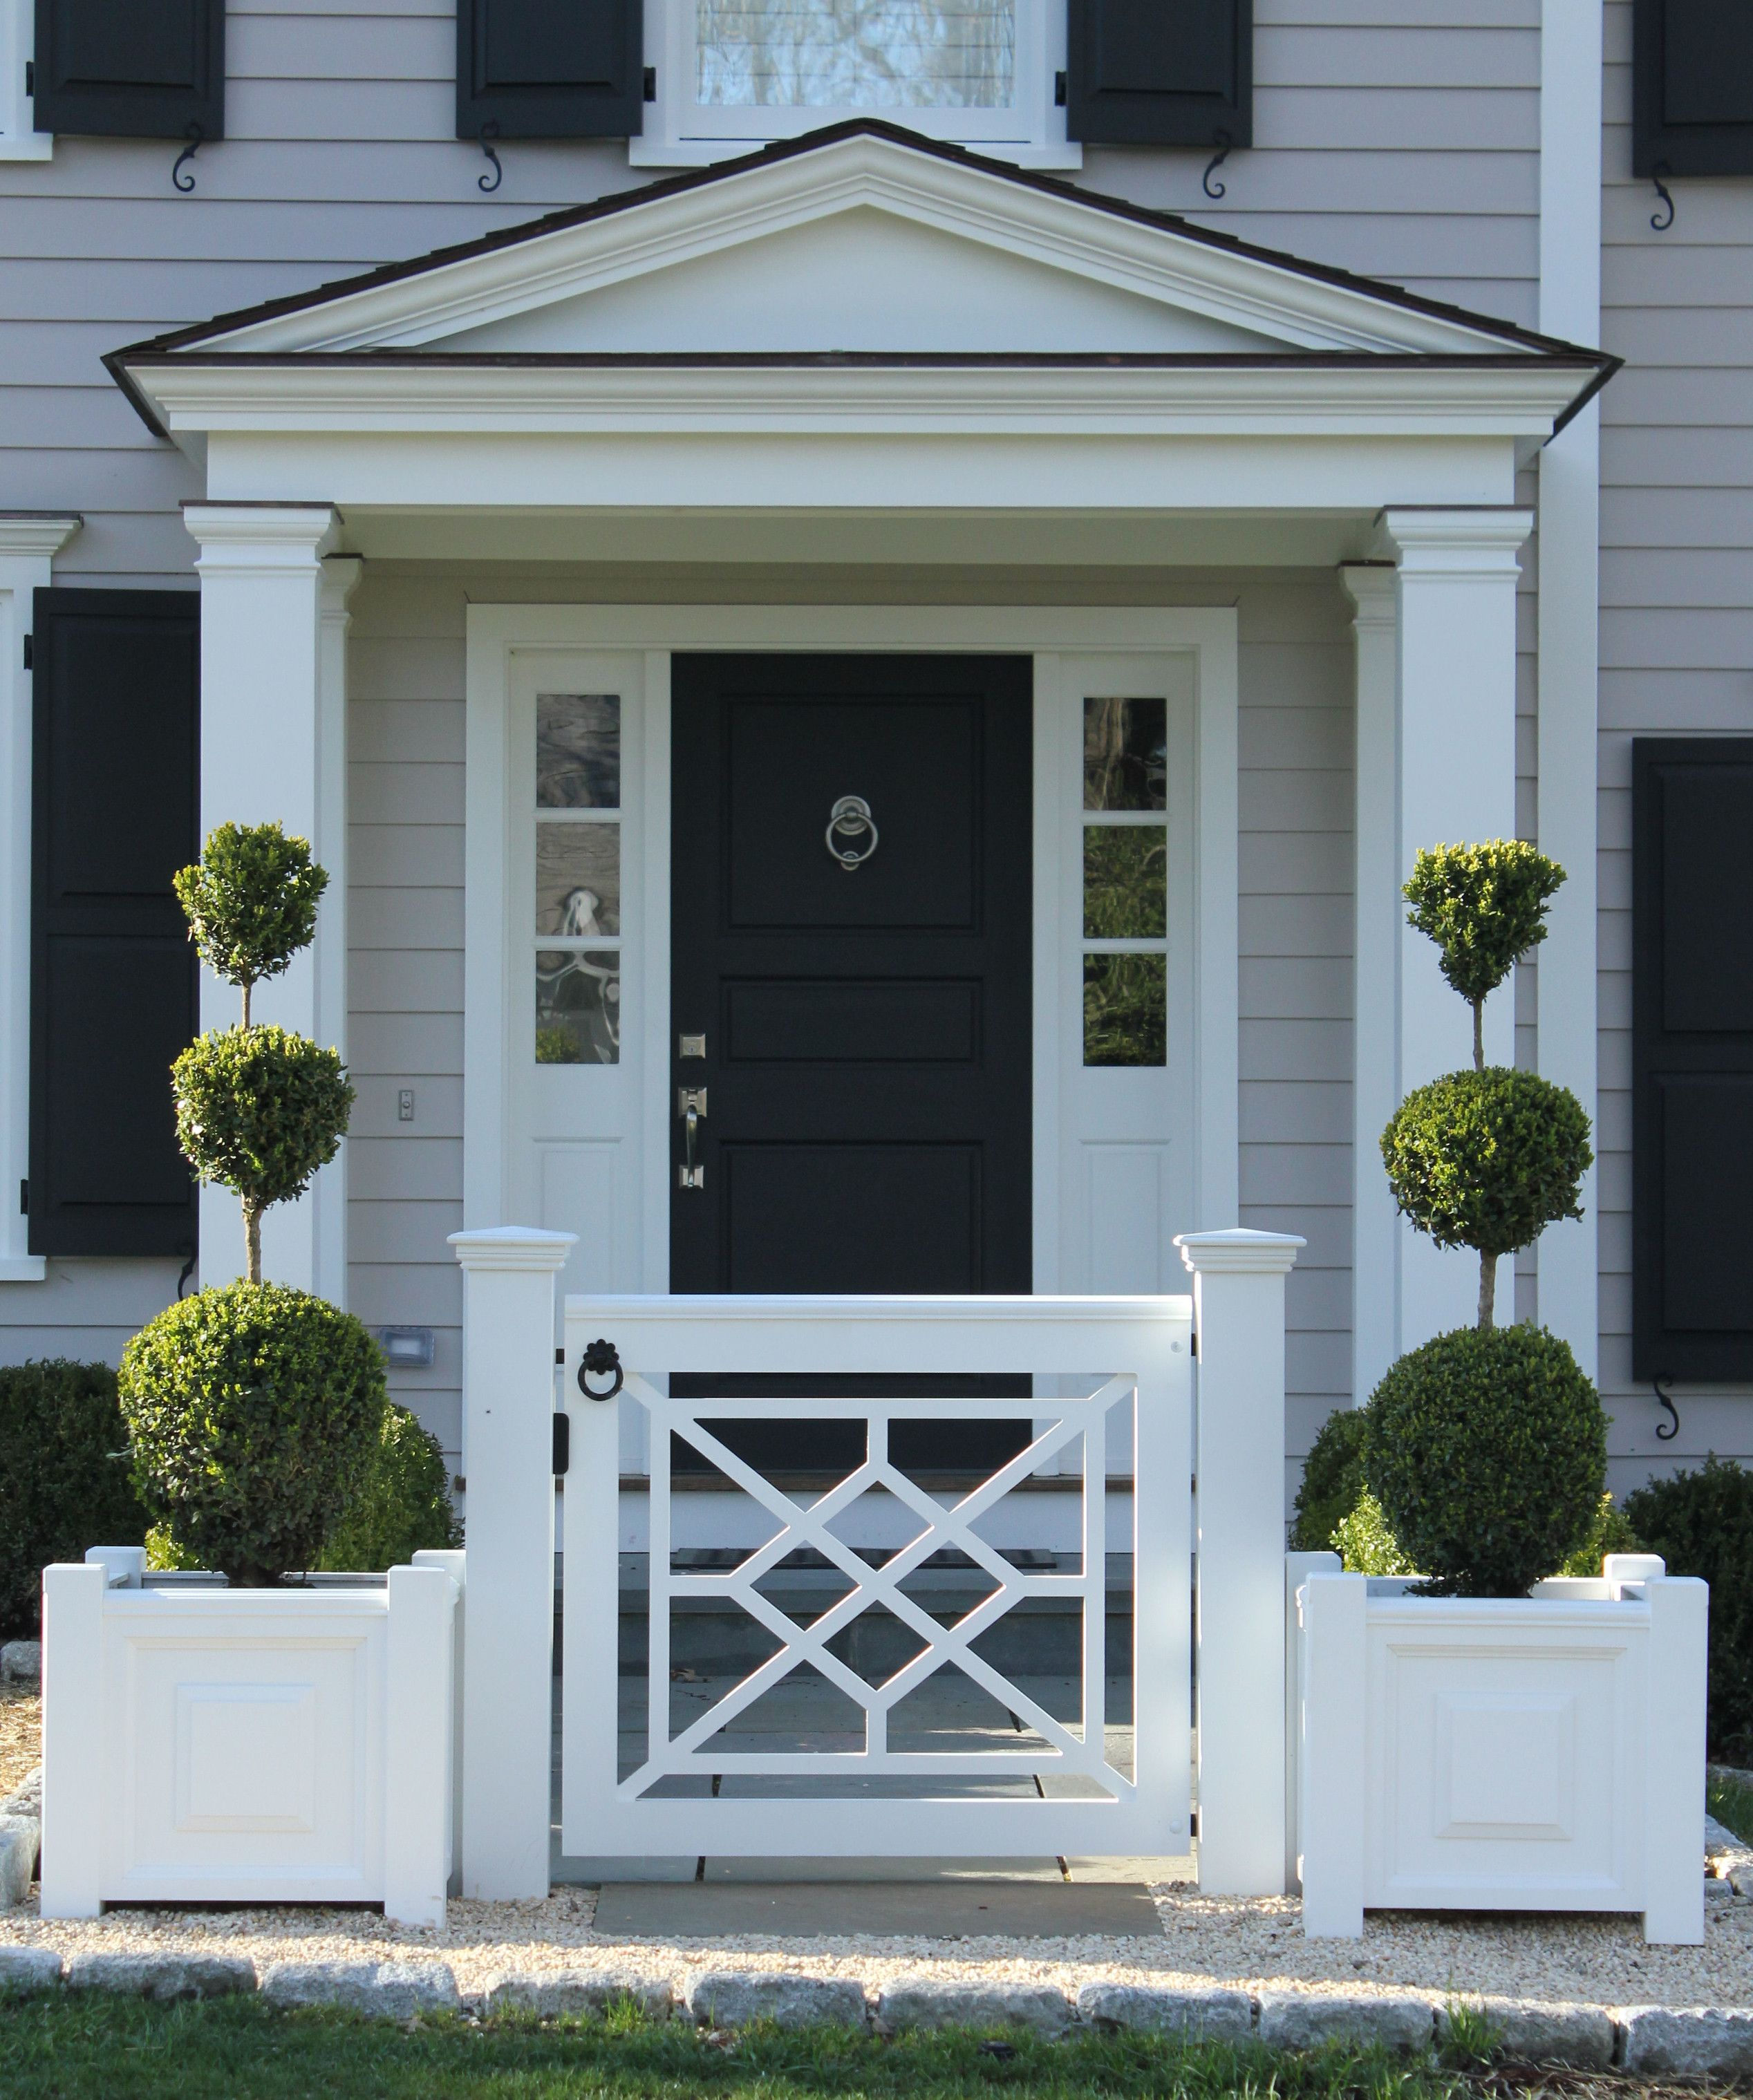 177 - New Canaan Ct - Chippendale Gate | Porch gate, House ...